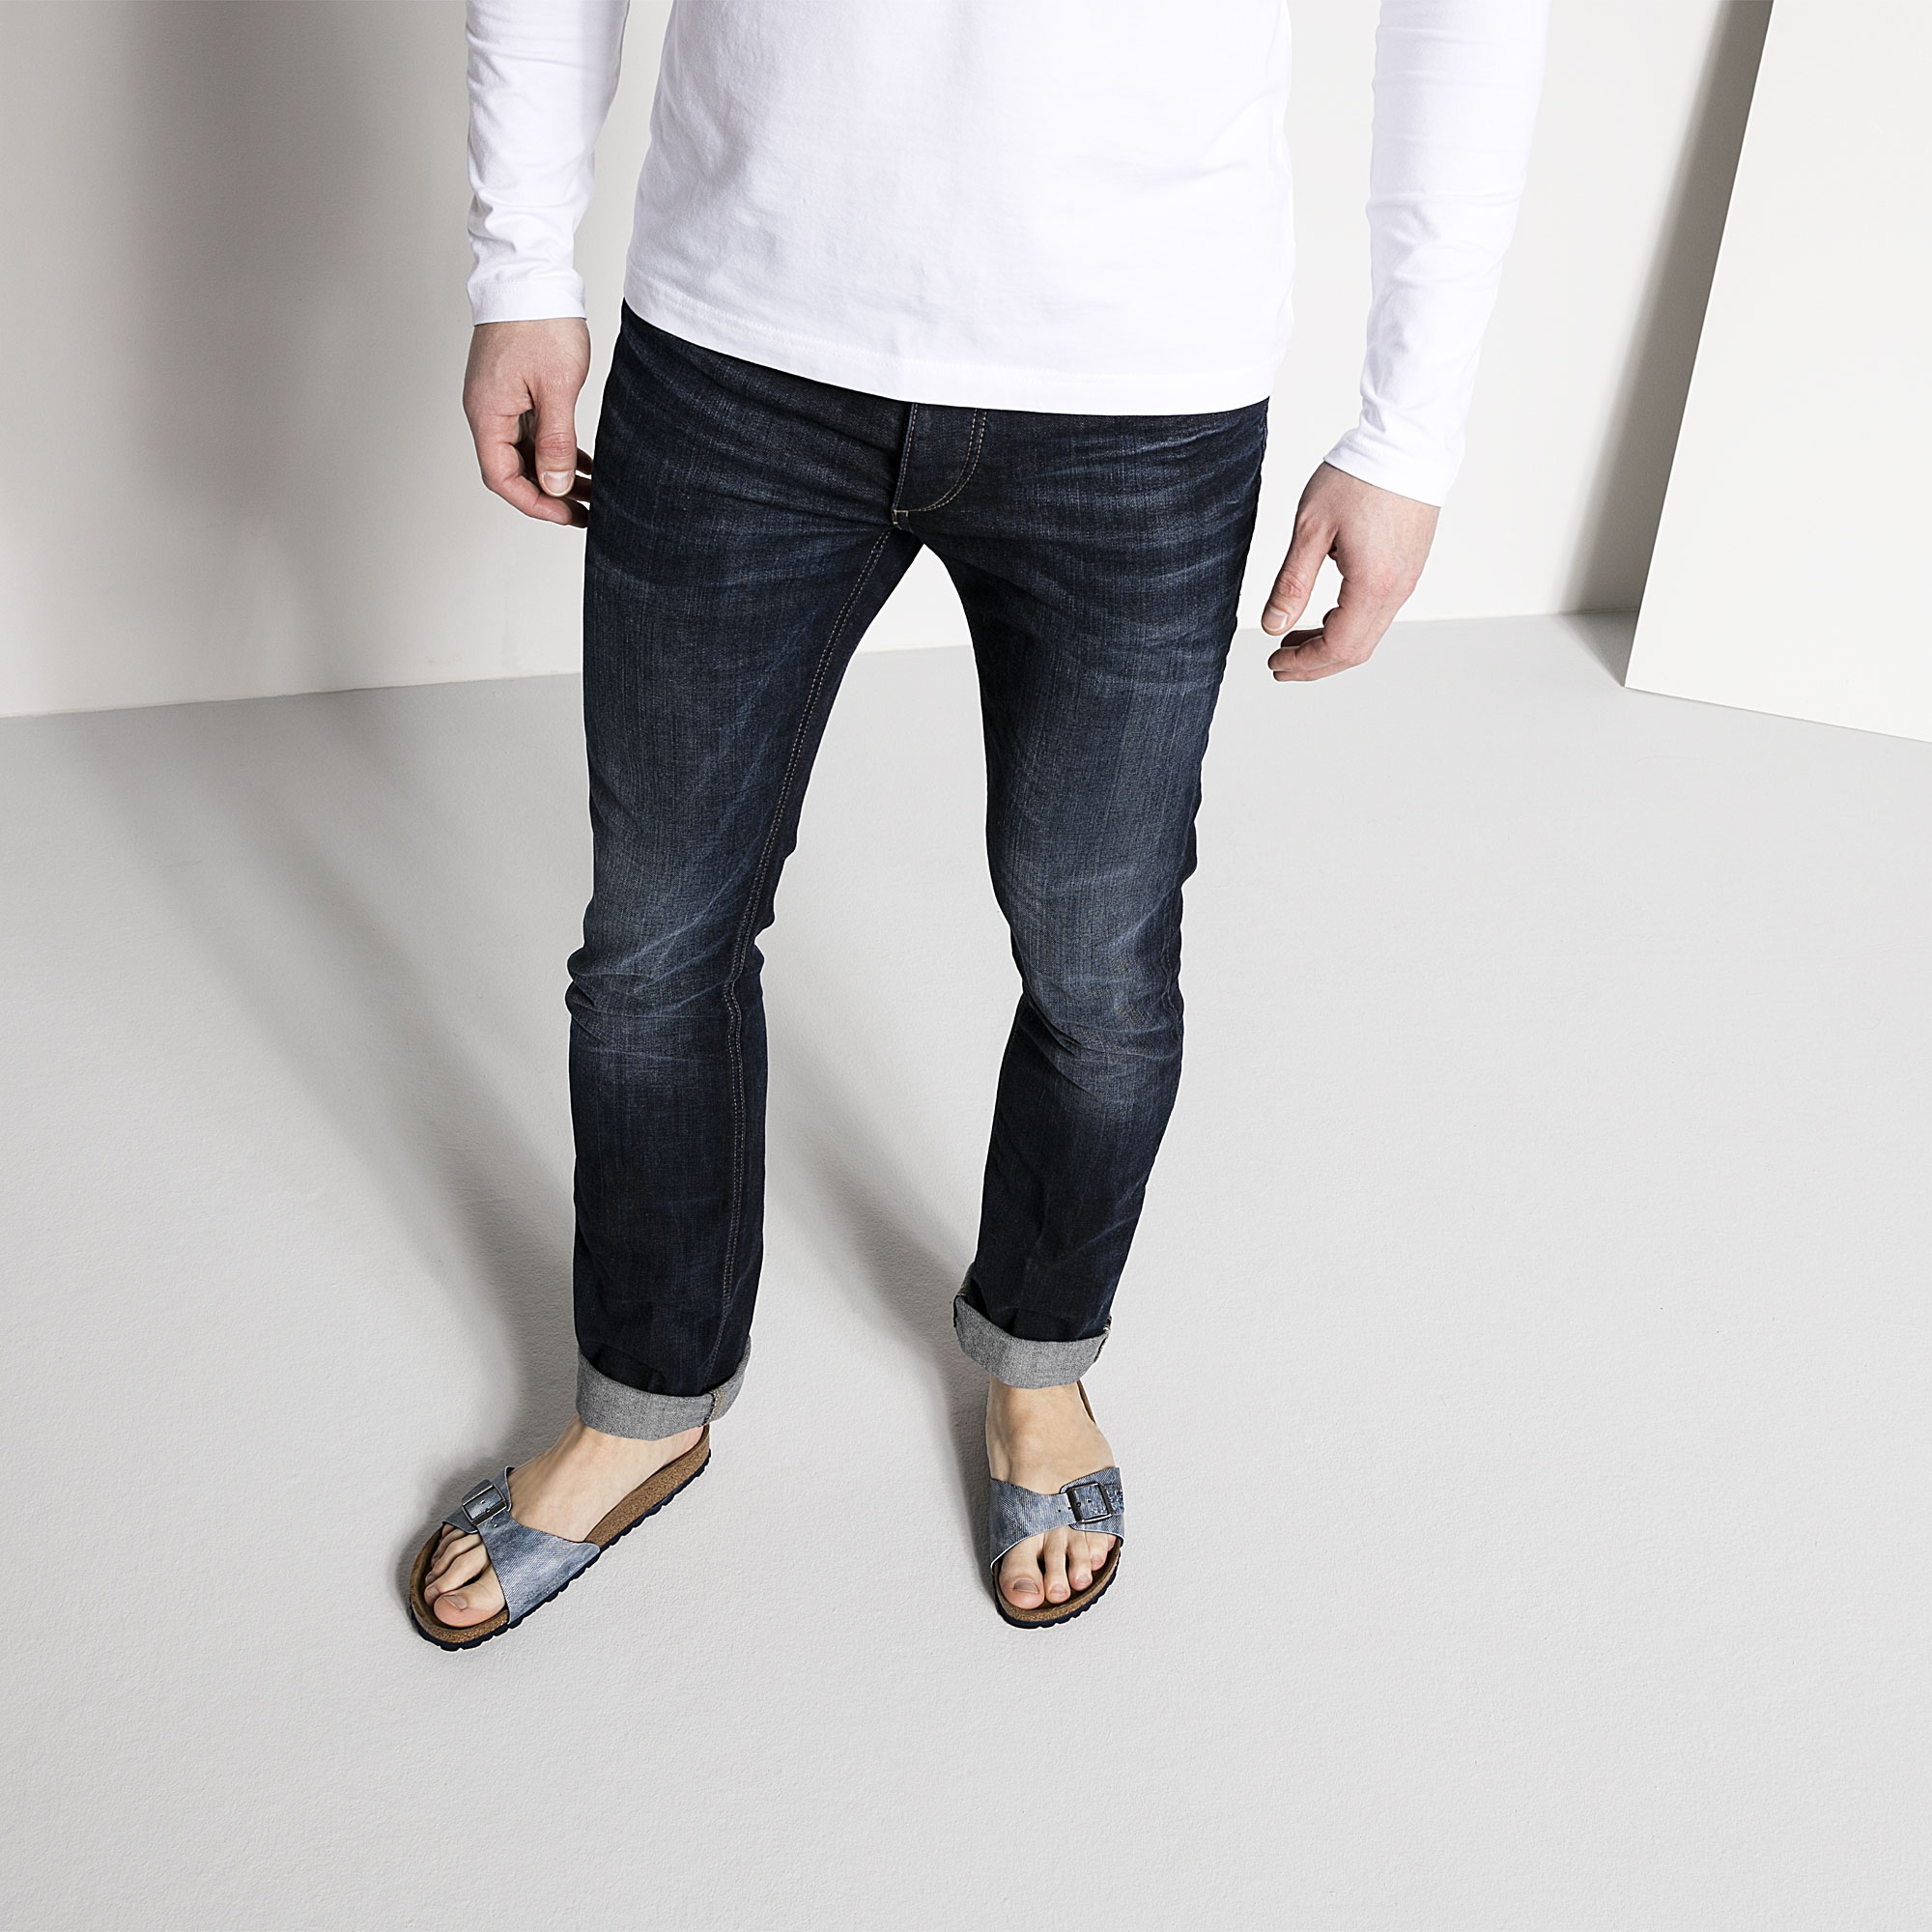 Madrid Birko Flor Jeans Washed Out Blue